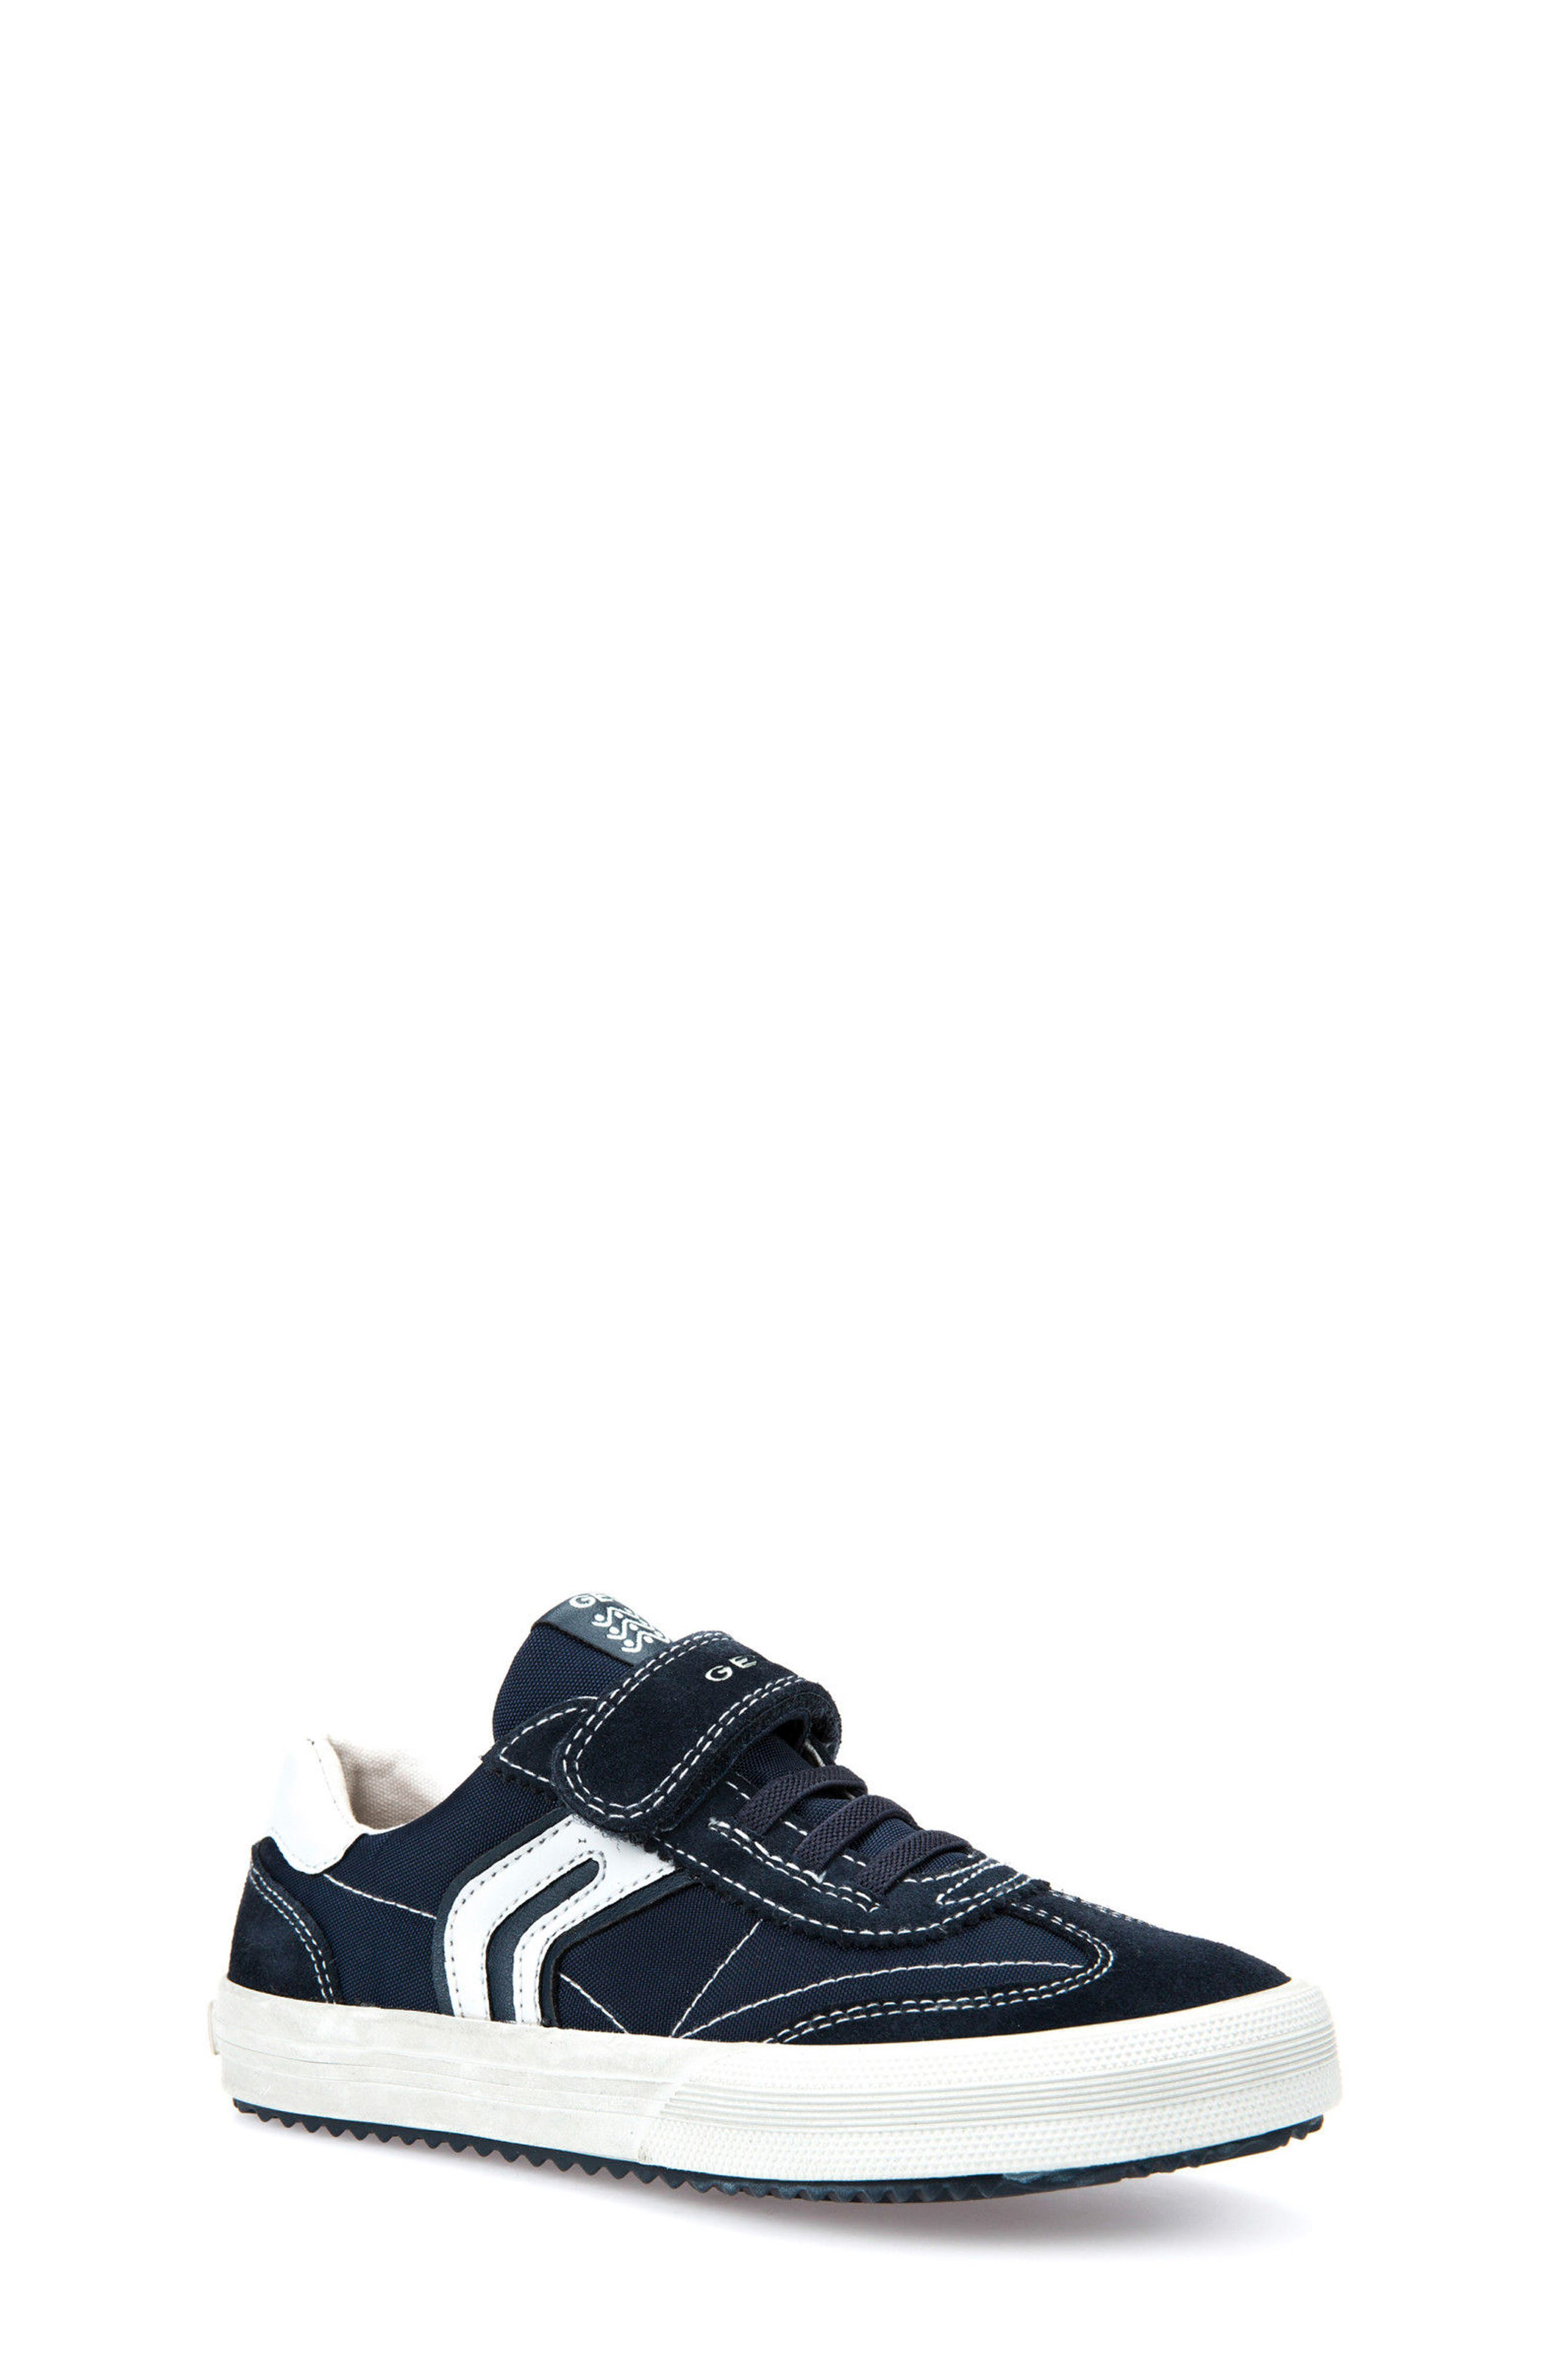 Alonisso Low Top Sneaker,                             Main thumbnail 1, color,                             NAVY/ GREY